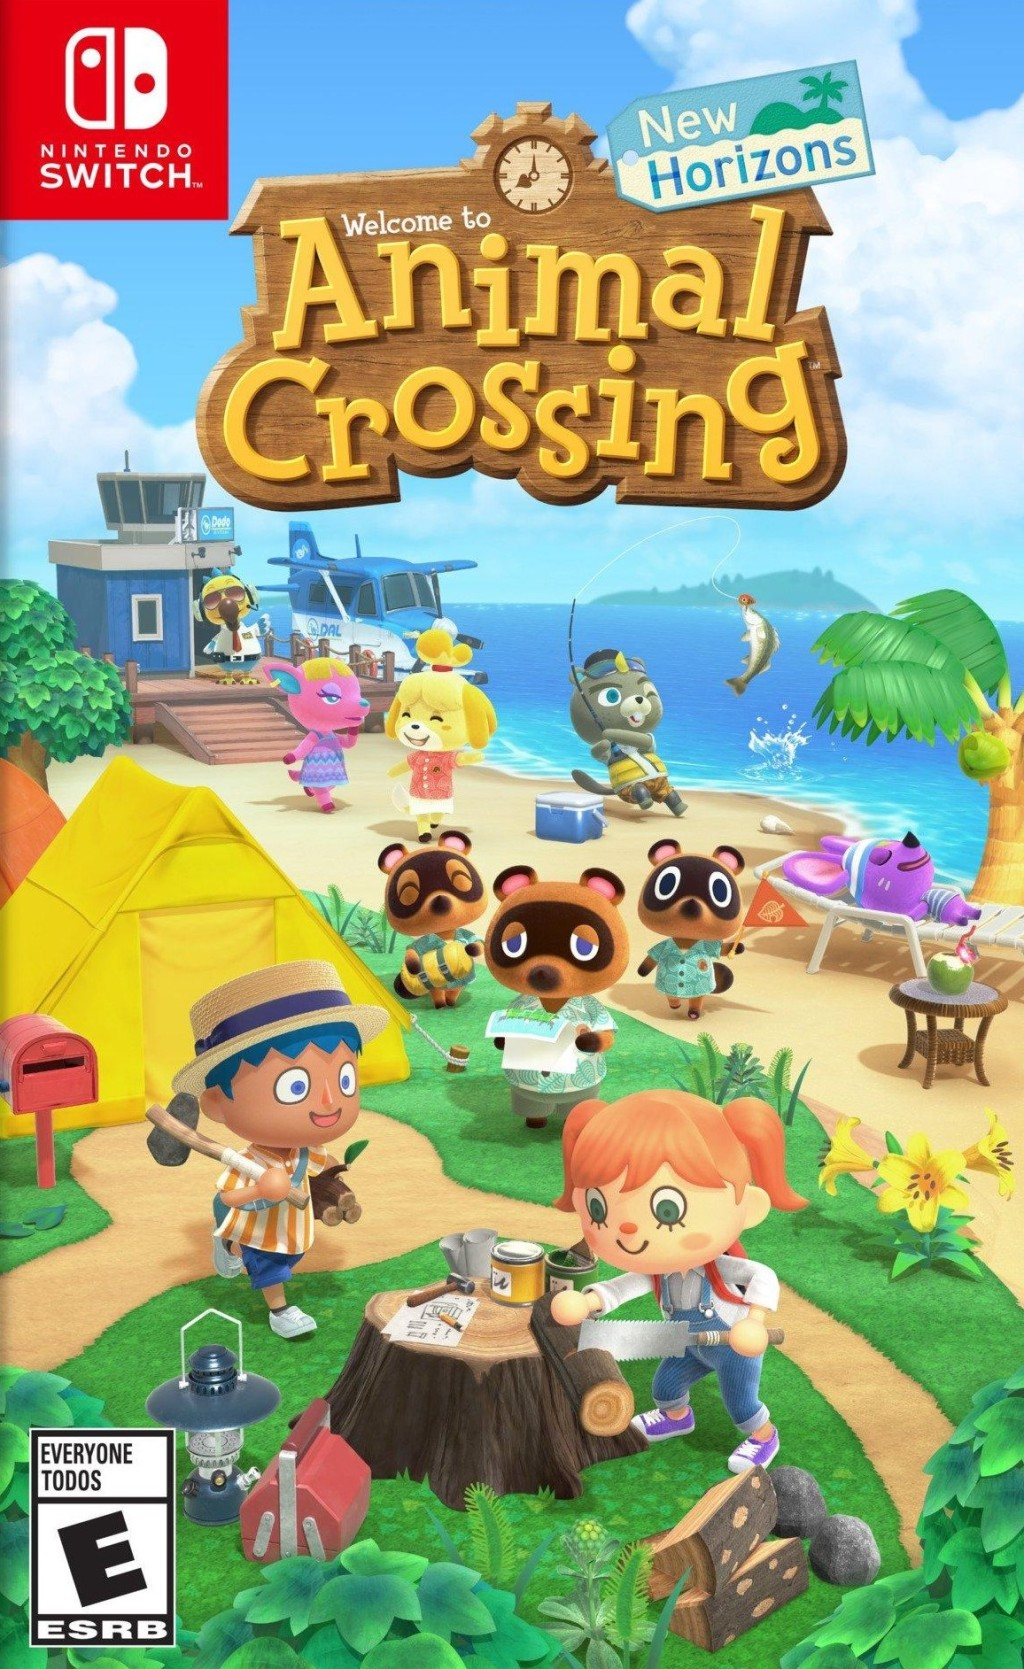 Animal Crossing: New Horizons - Why its ranked No. 21 on